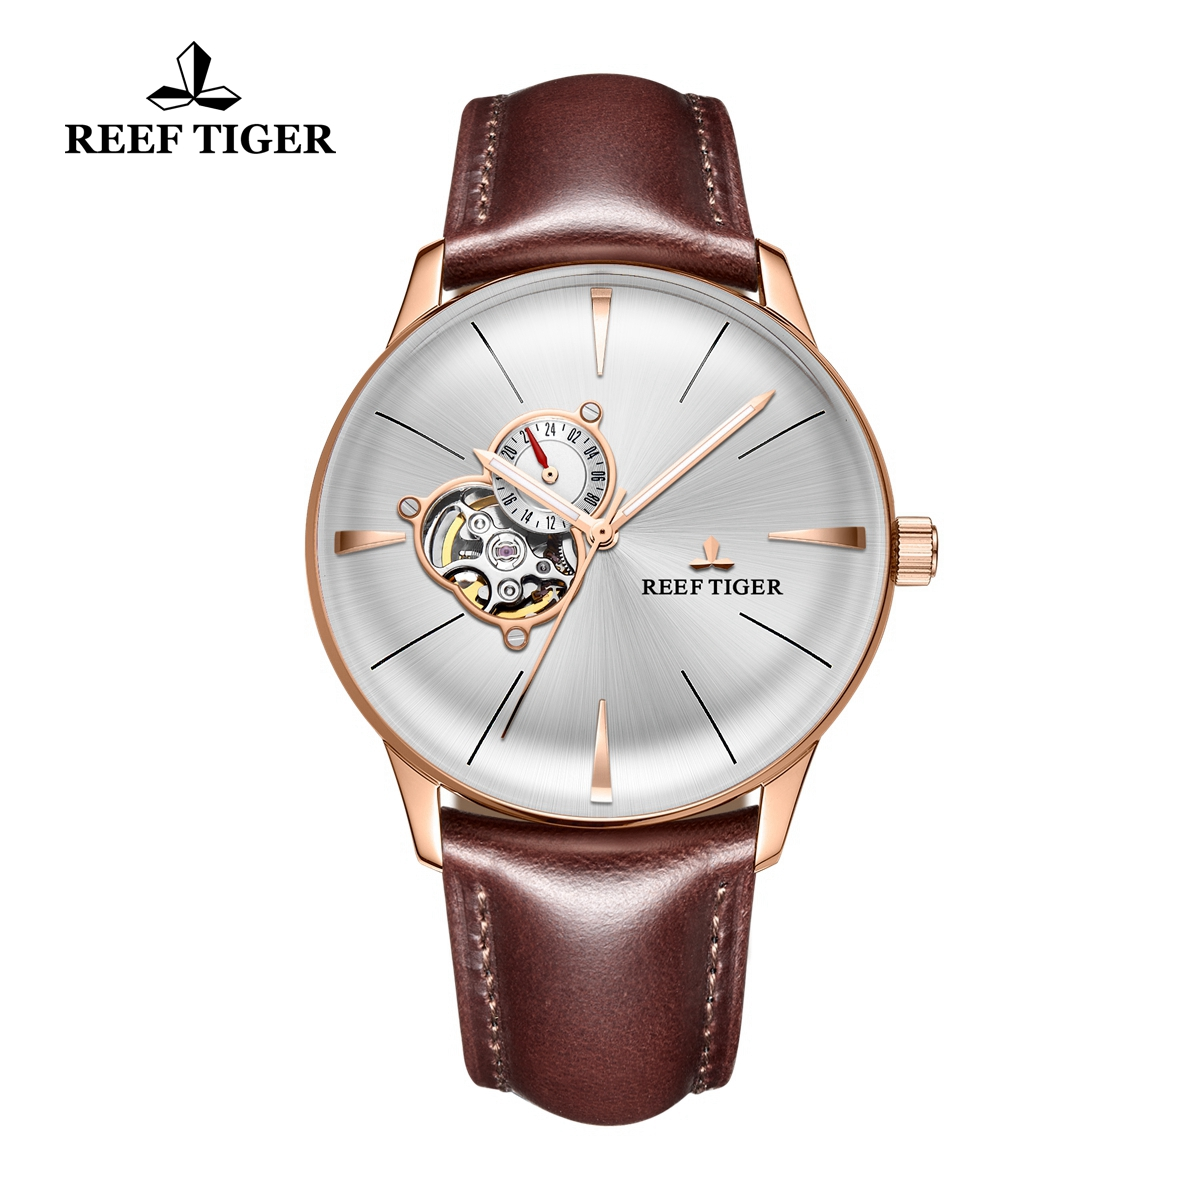 Reef Tiger Classic Glory Rose Gold White Dial Men's Automatic Watch Leather Strap RGA8239-PWBH